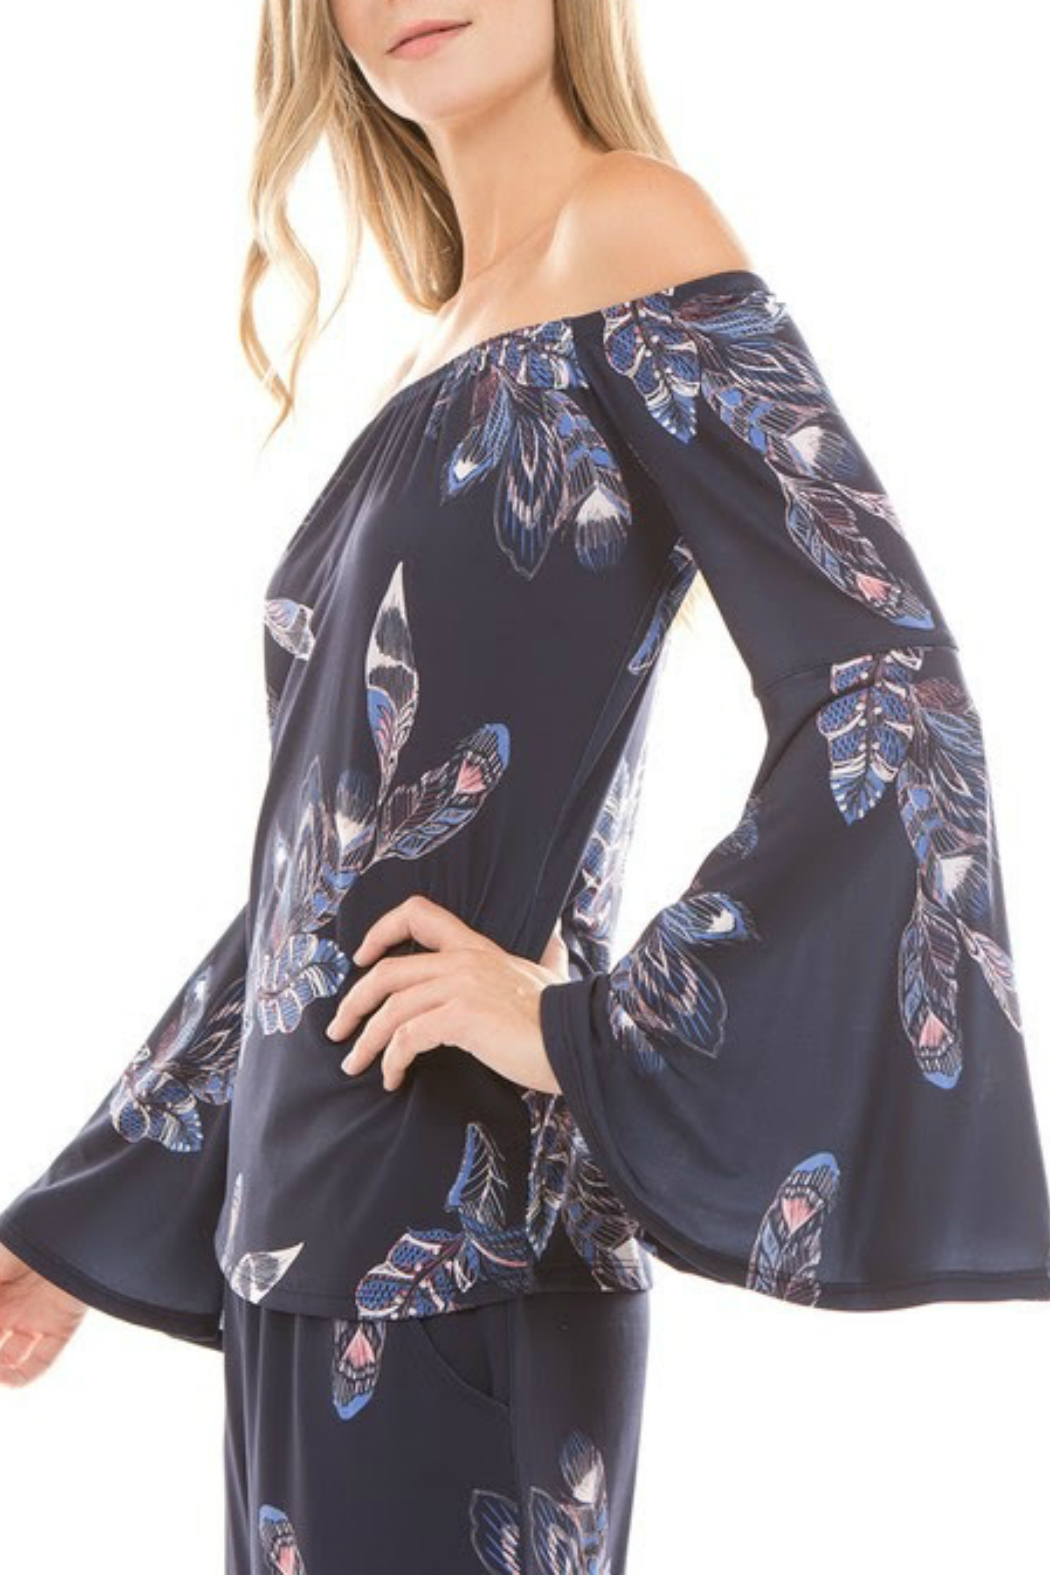 Vava by Joy Hahn Off Shoulder Bell Sleeve Top - Front Full Image